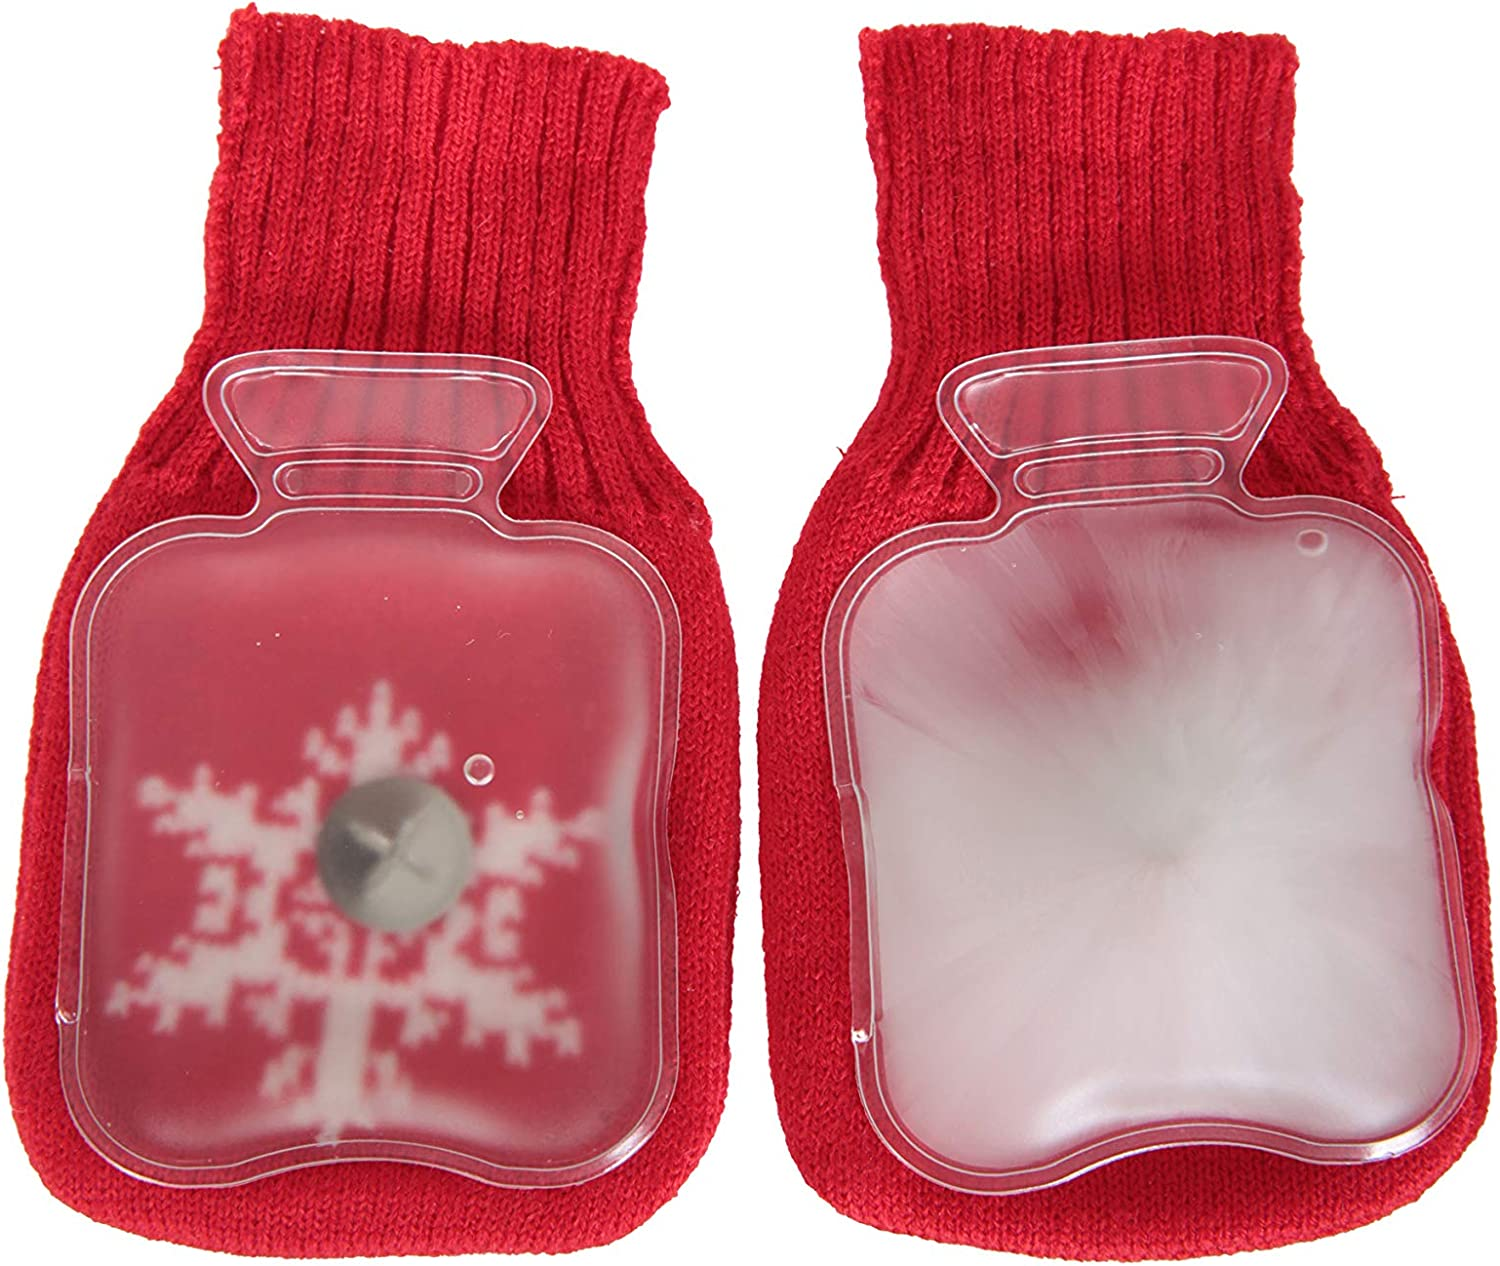 Mountain Warehouse Re-Usable Hand Warmer Gift Set Best for Winter Twin Pack Handwarmer Camping /& Travelling Easy to Activate Reheatable Hand Warmer,Instant Heat